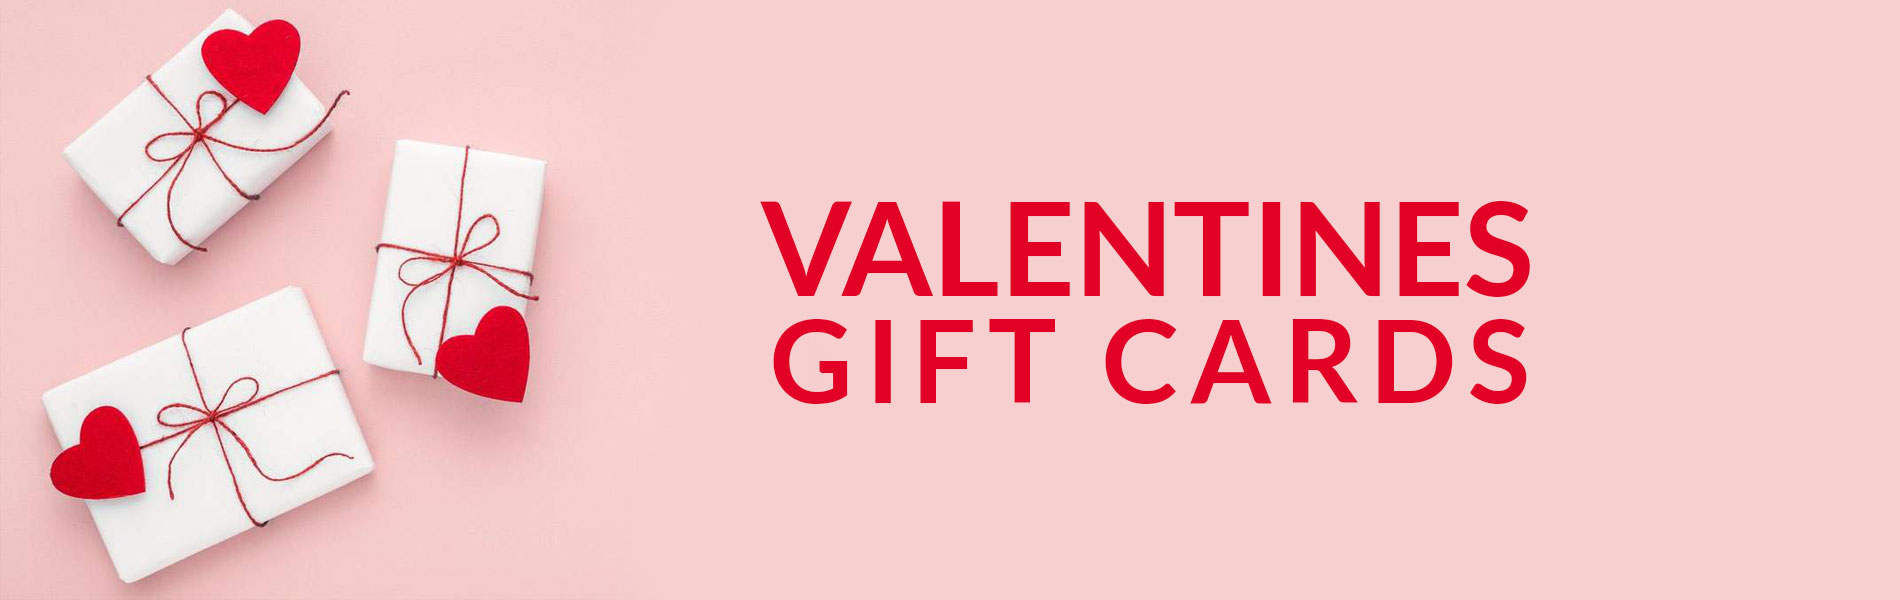 valentines-Gift-Cards-banner